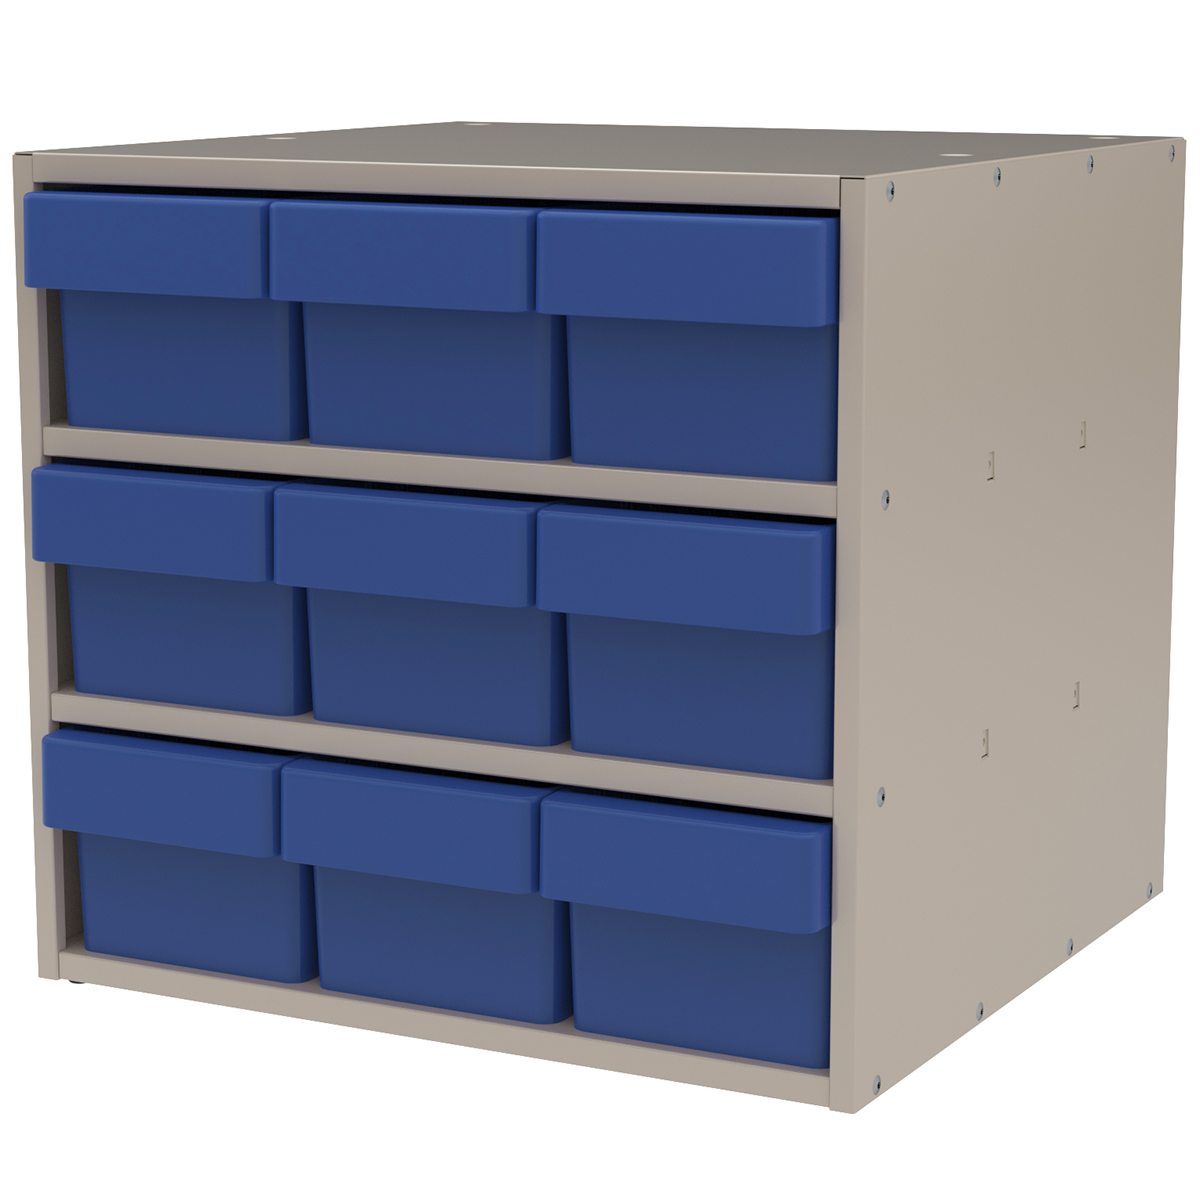 Item DISCONTINUED by Manufacturer.  Modular Cabinet, 18x17x16, 9 Drawers, Putty/Blue (AD1817P68BLU).  This item sold in carton quantities of 1.